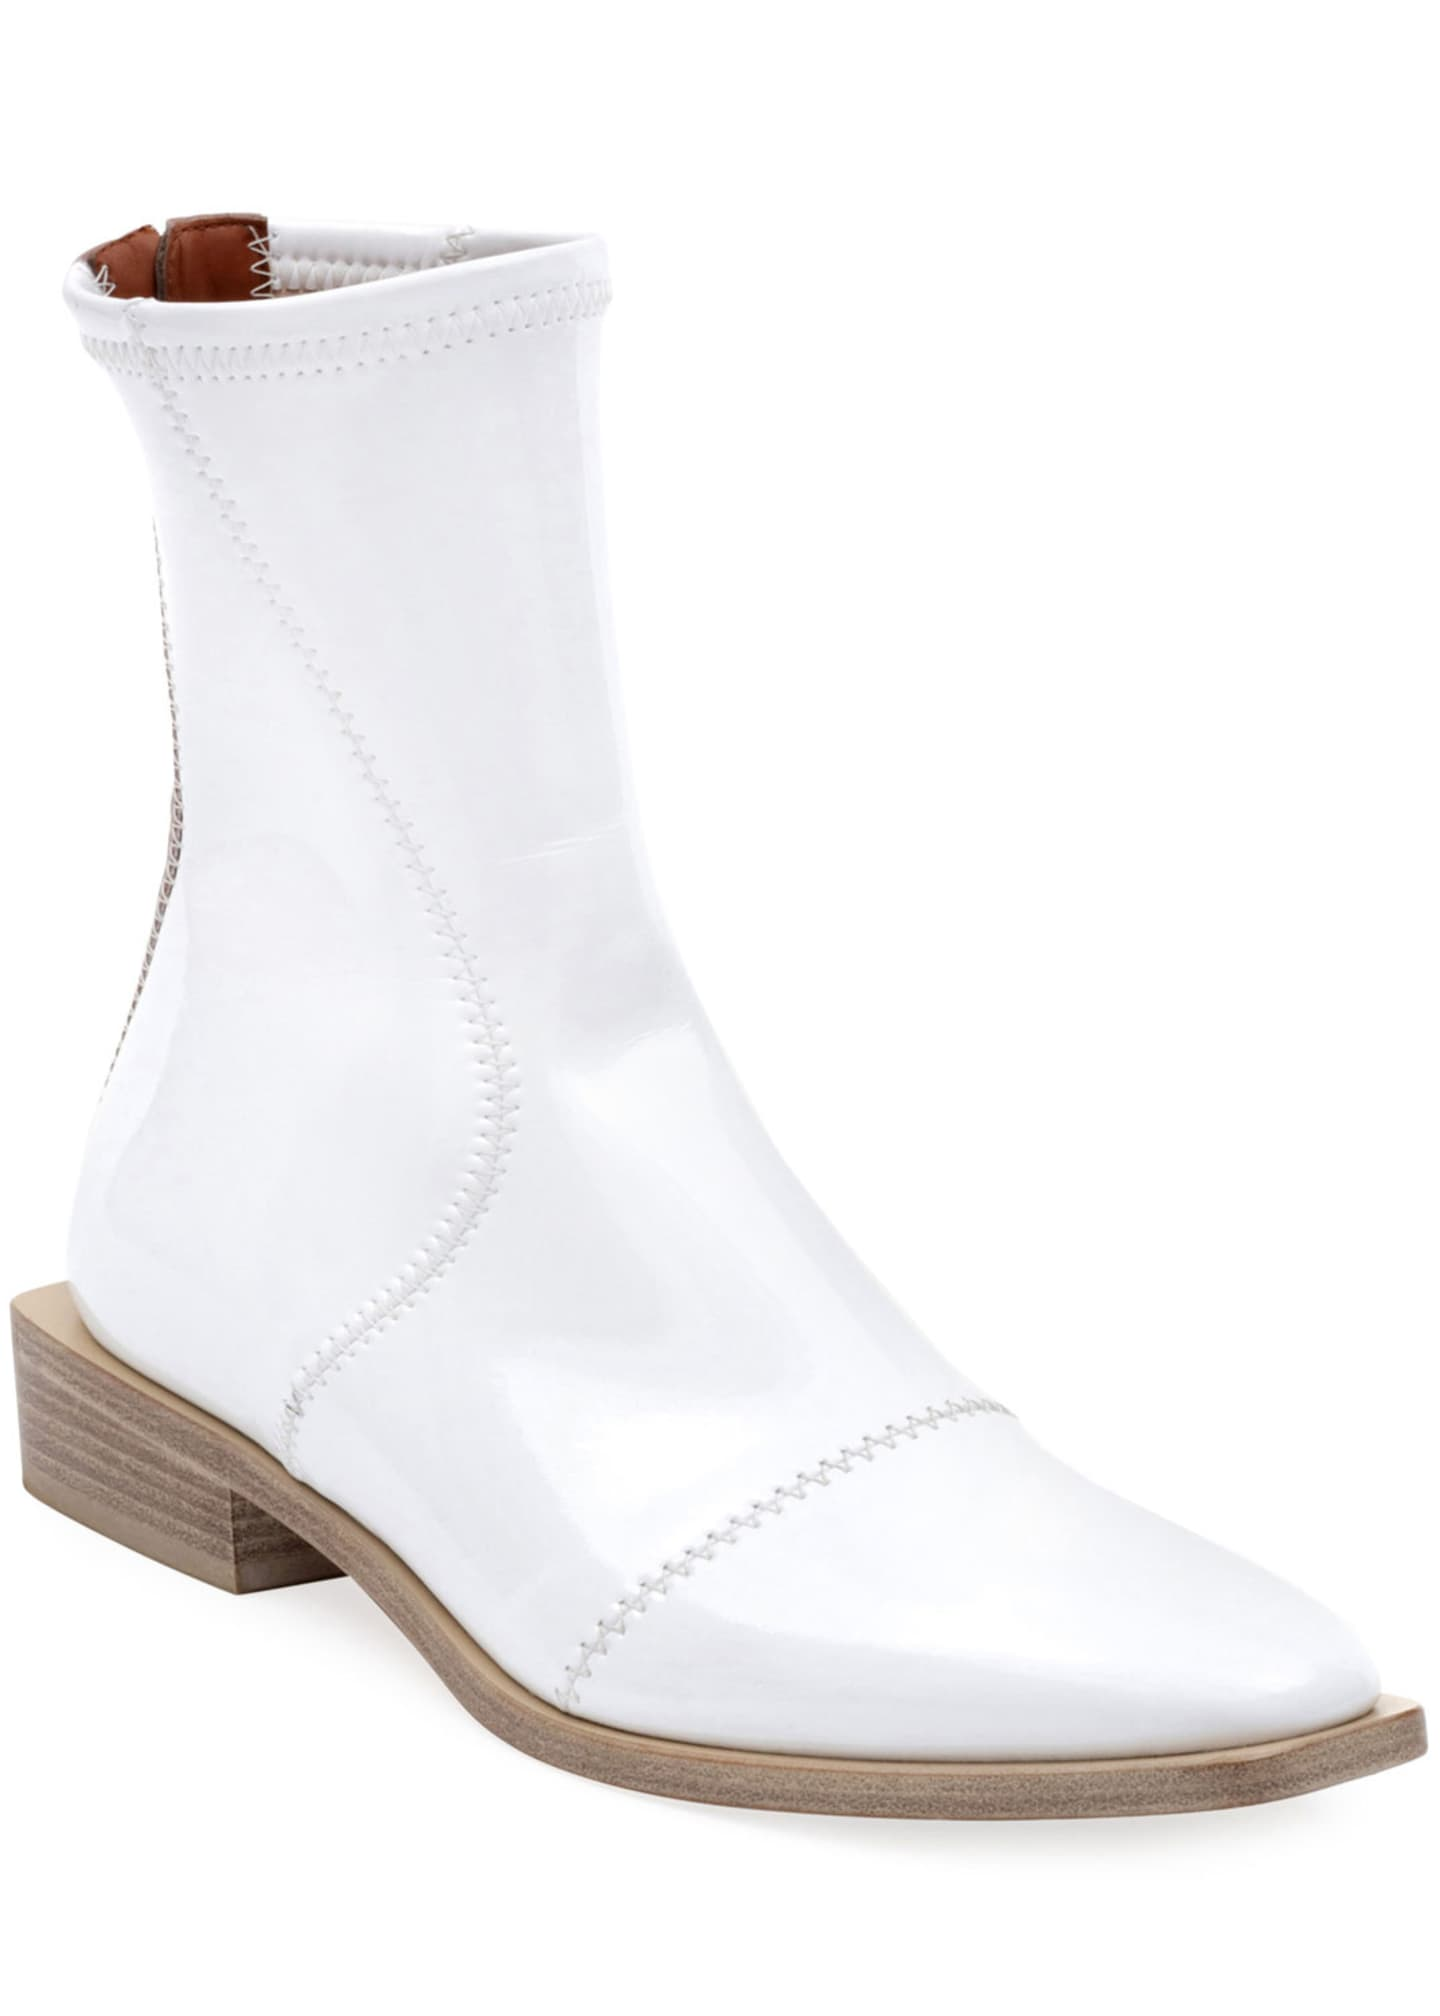 Fendi Flat Neoprene Back-Zip Booties